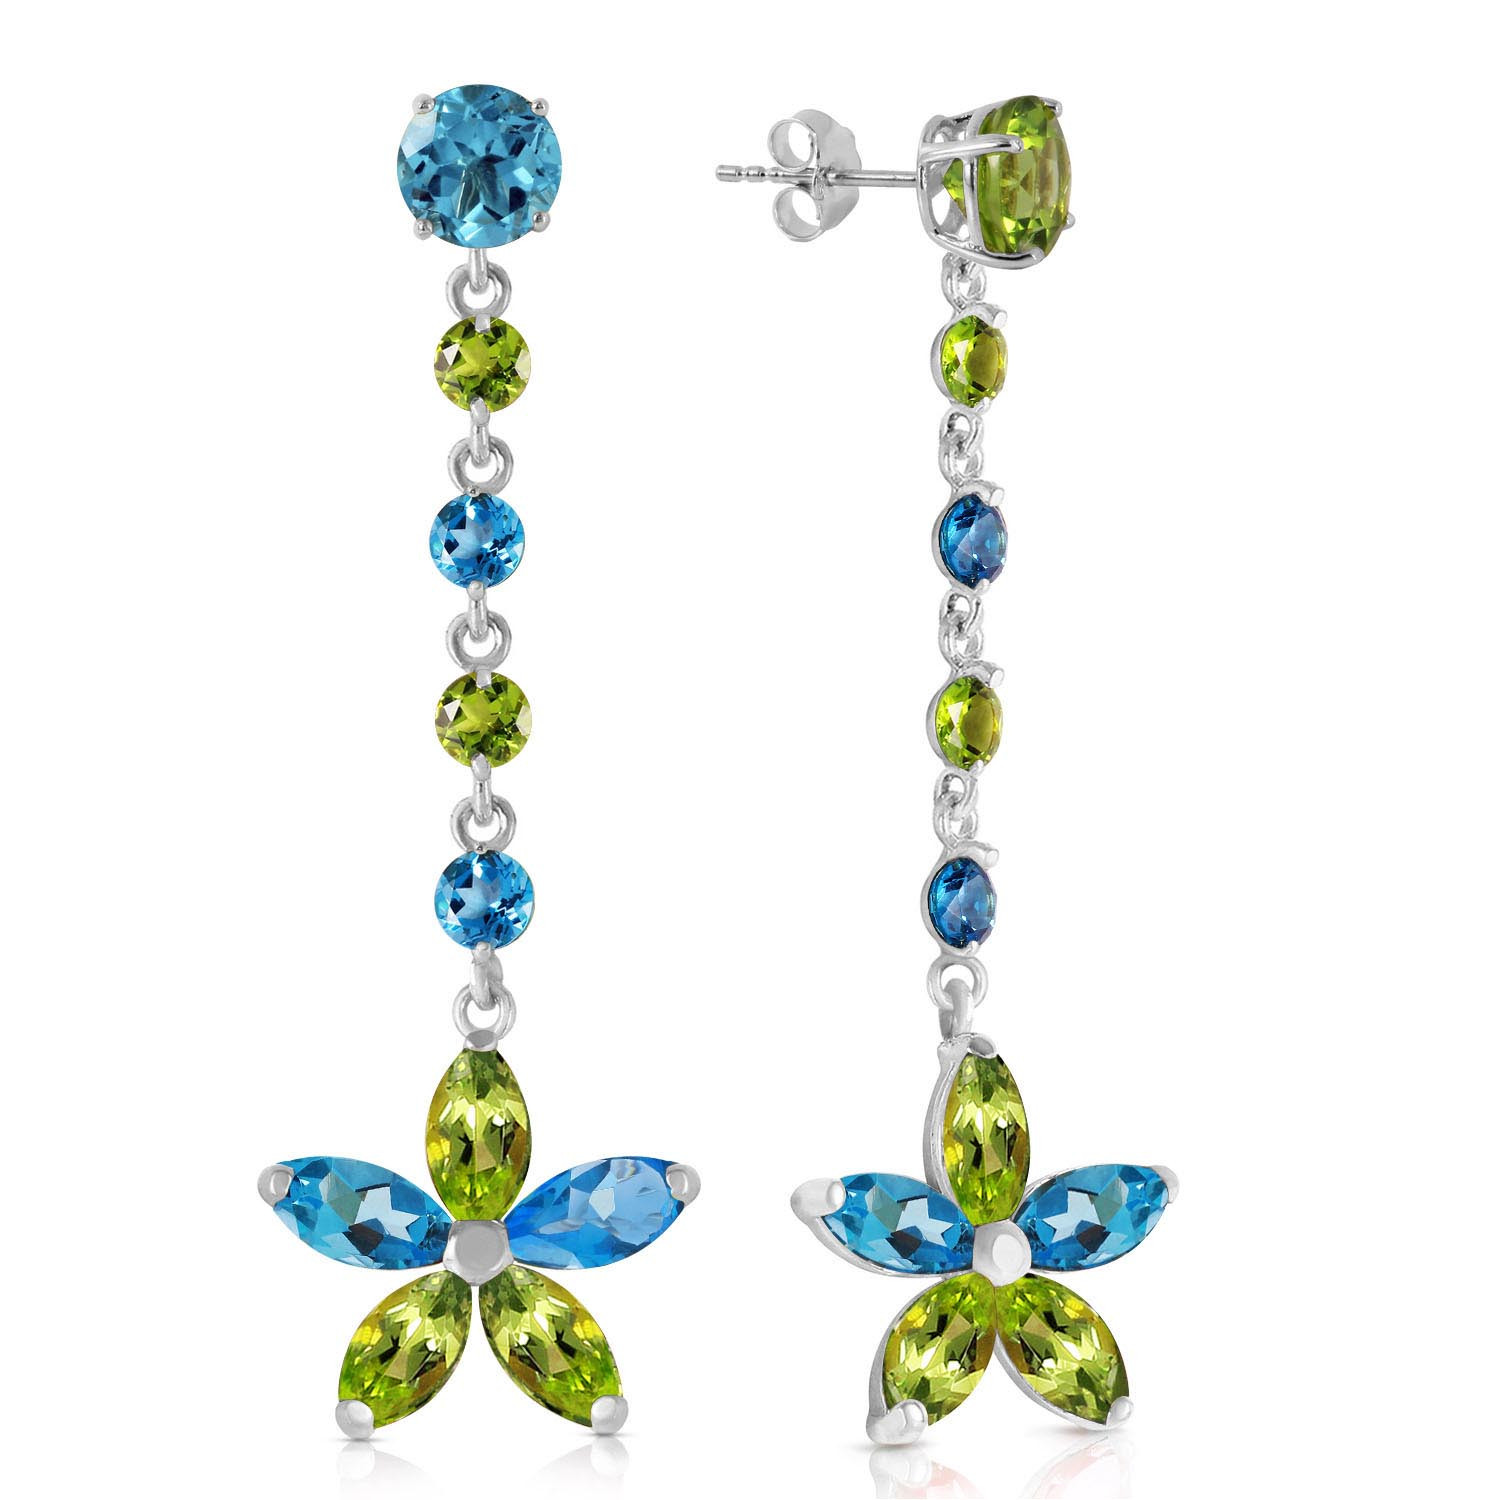 Blue Topaz & Peridot Daisy Chain Drop Earrings in 9ct White Gold